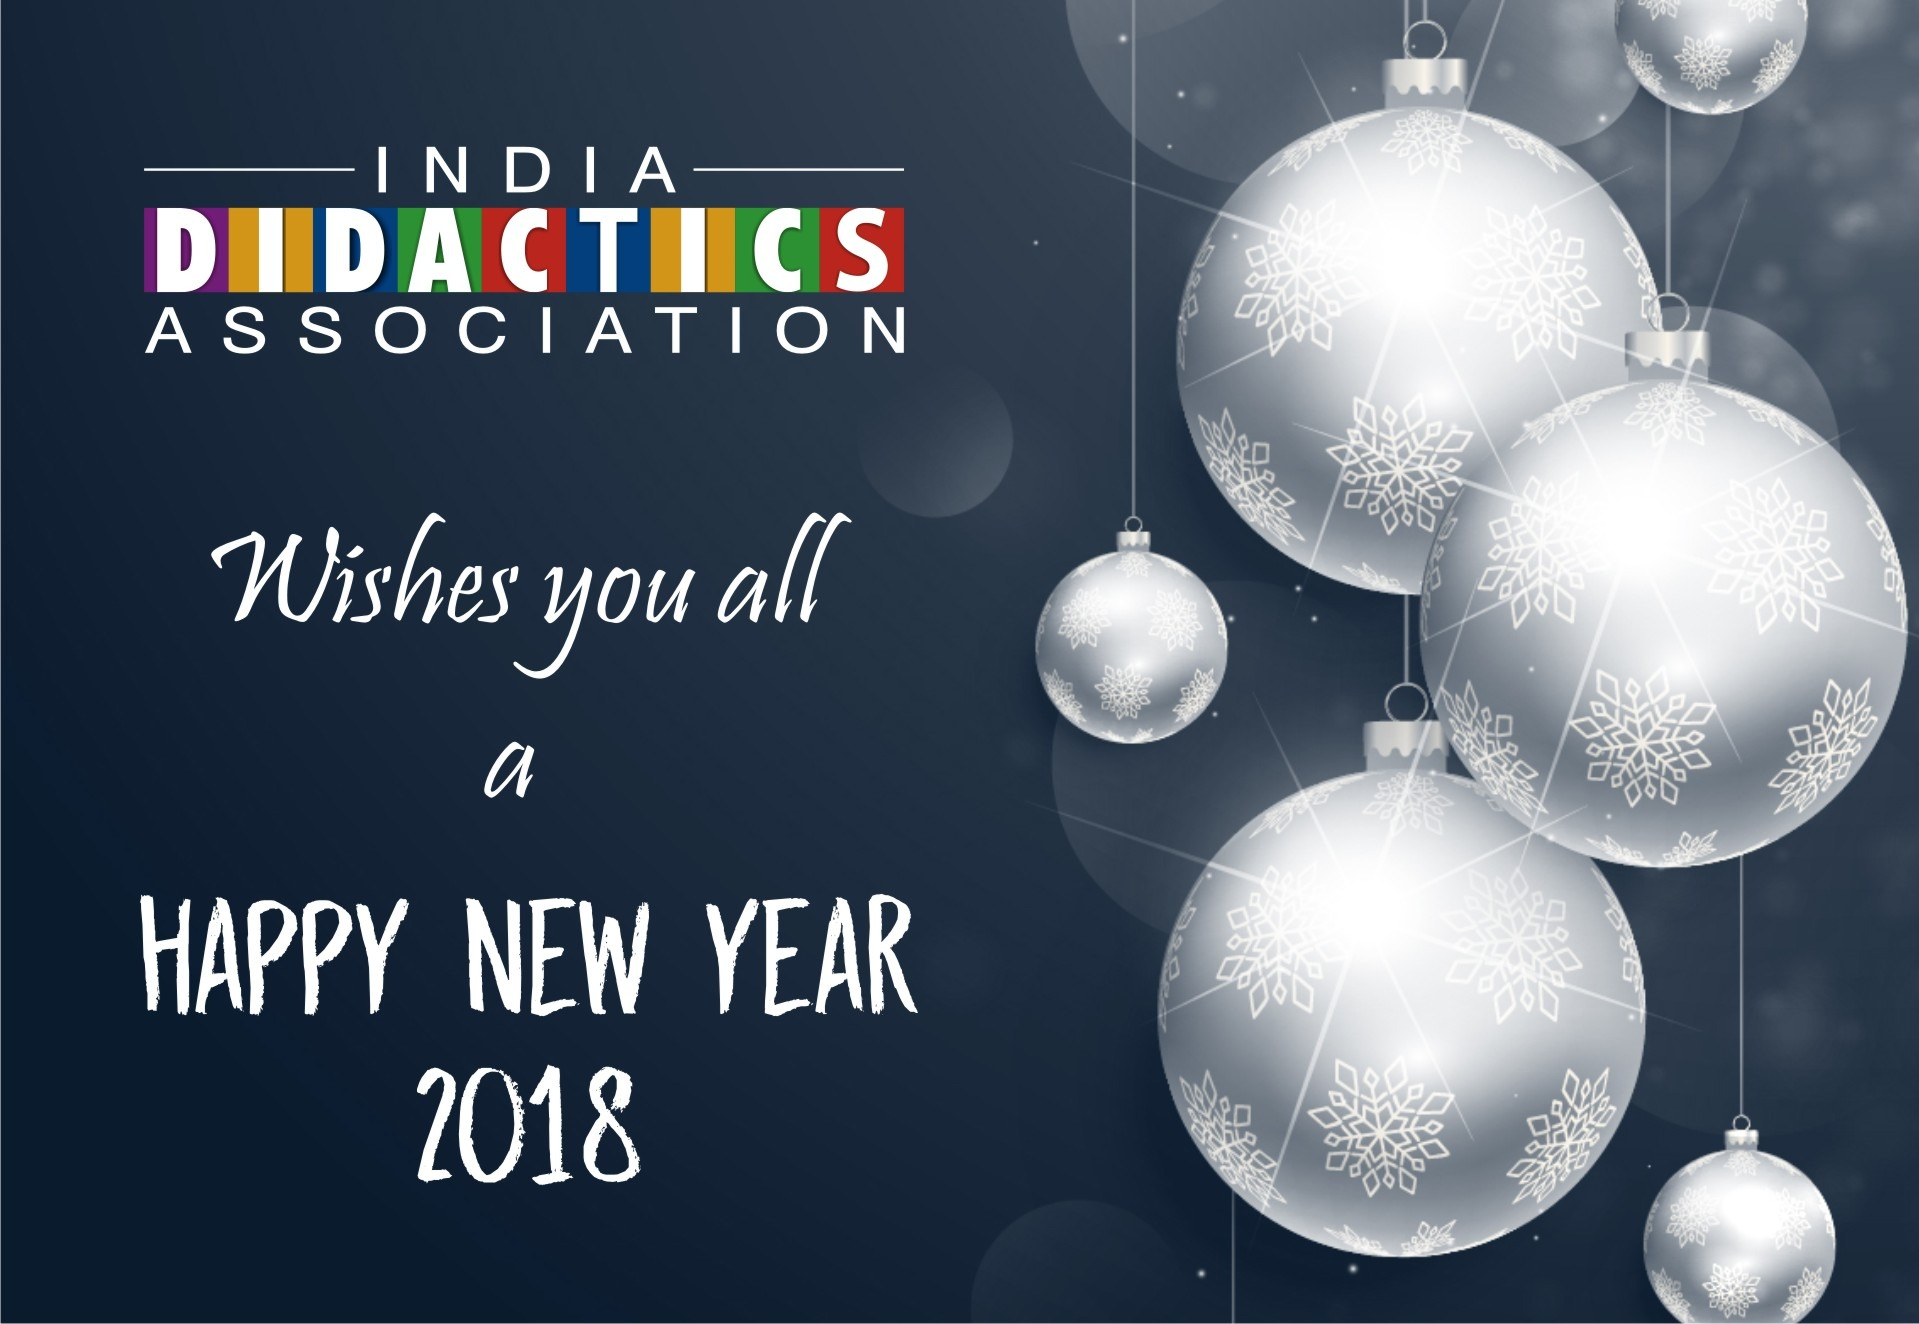 new year greetings from india didac team